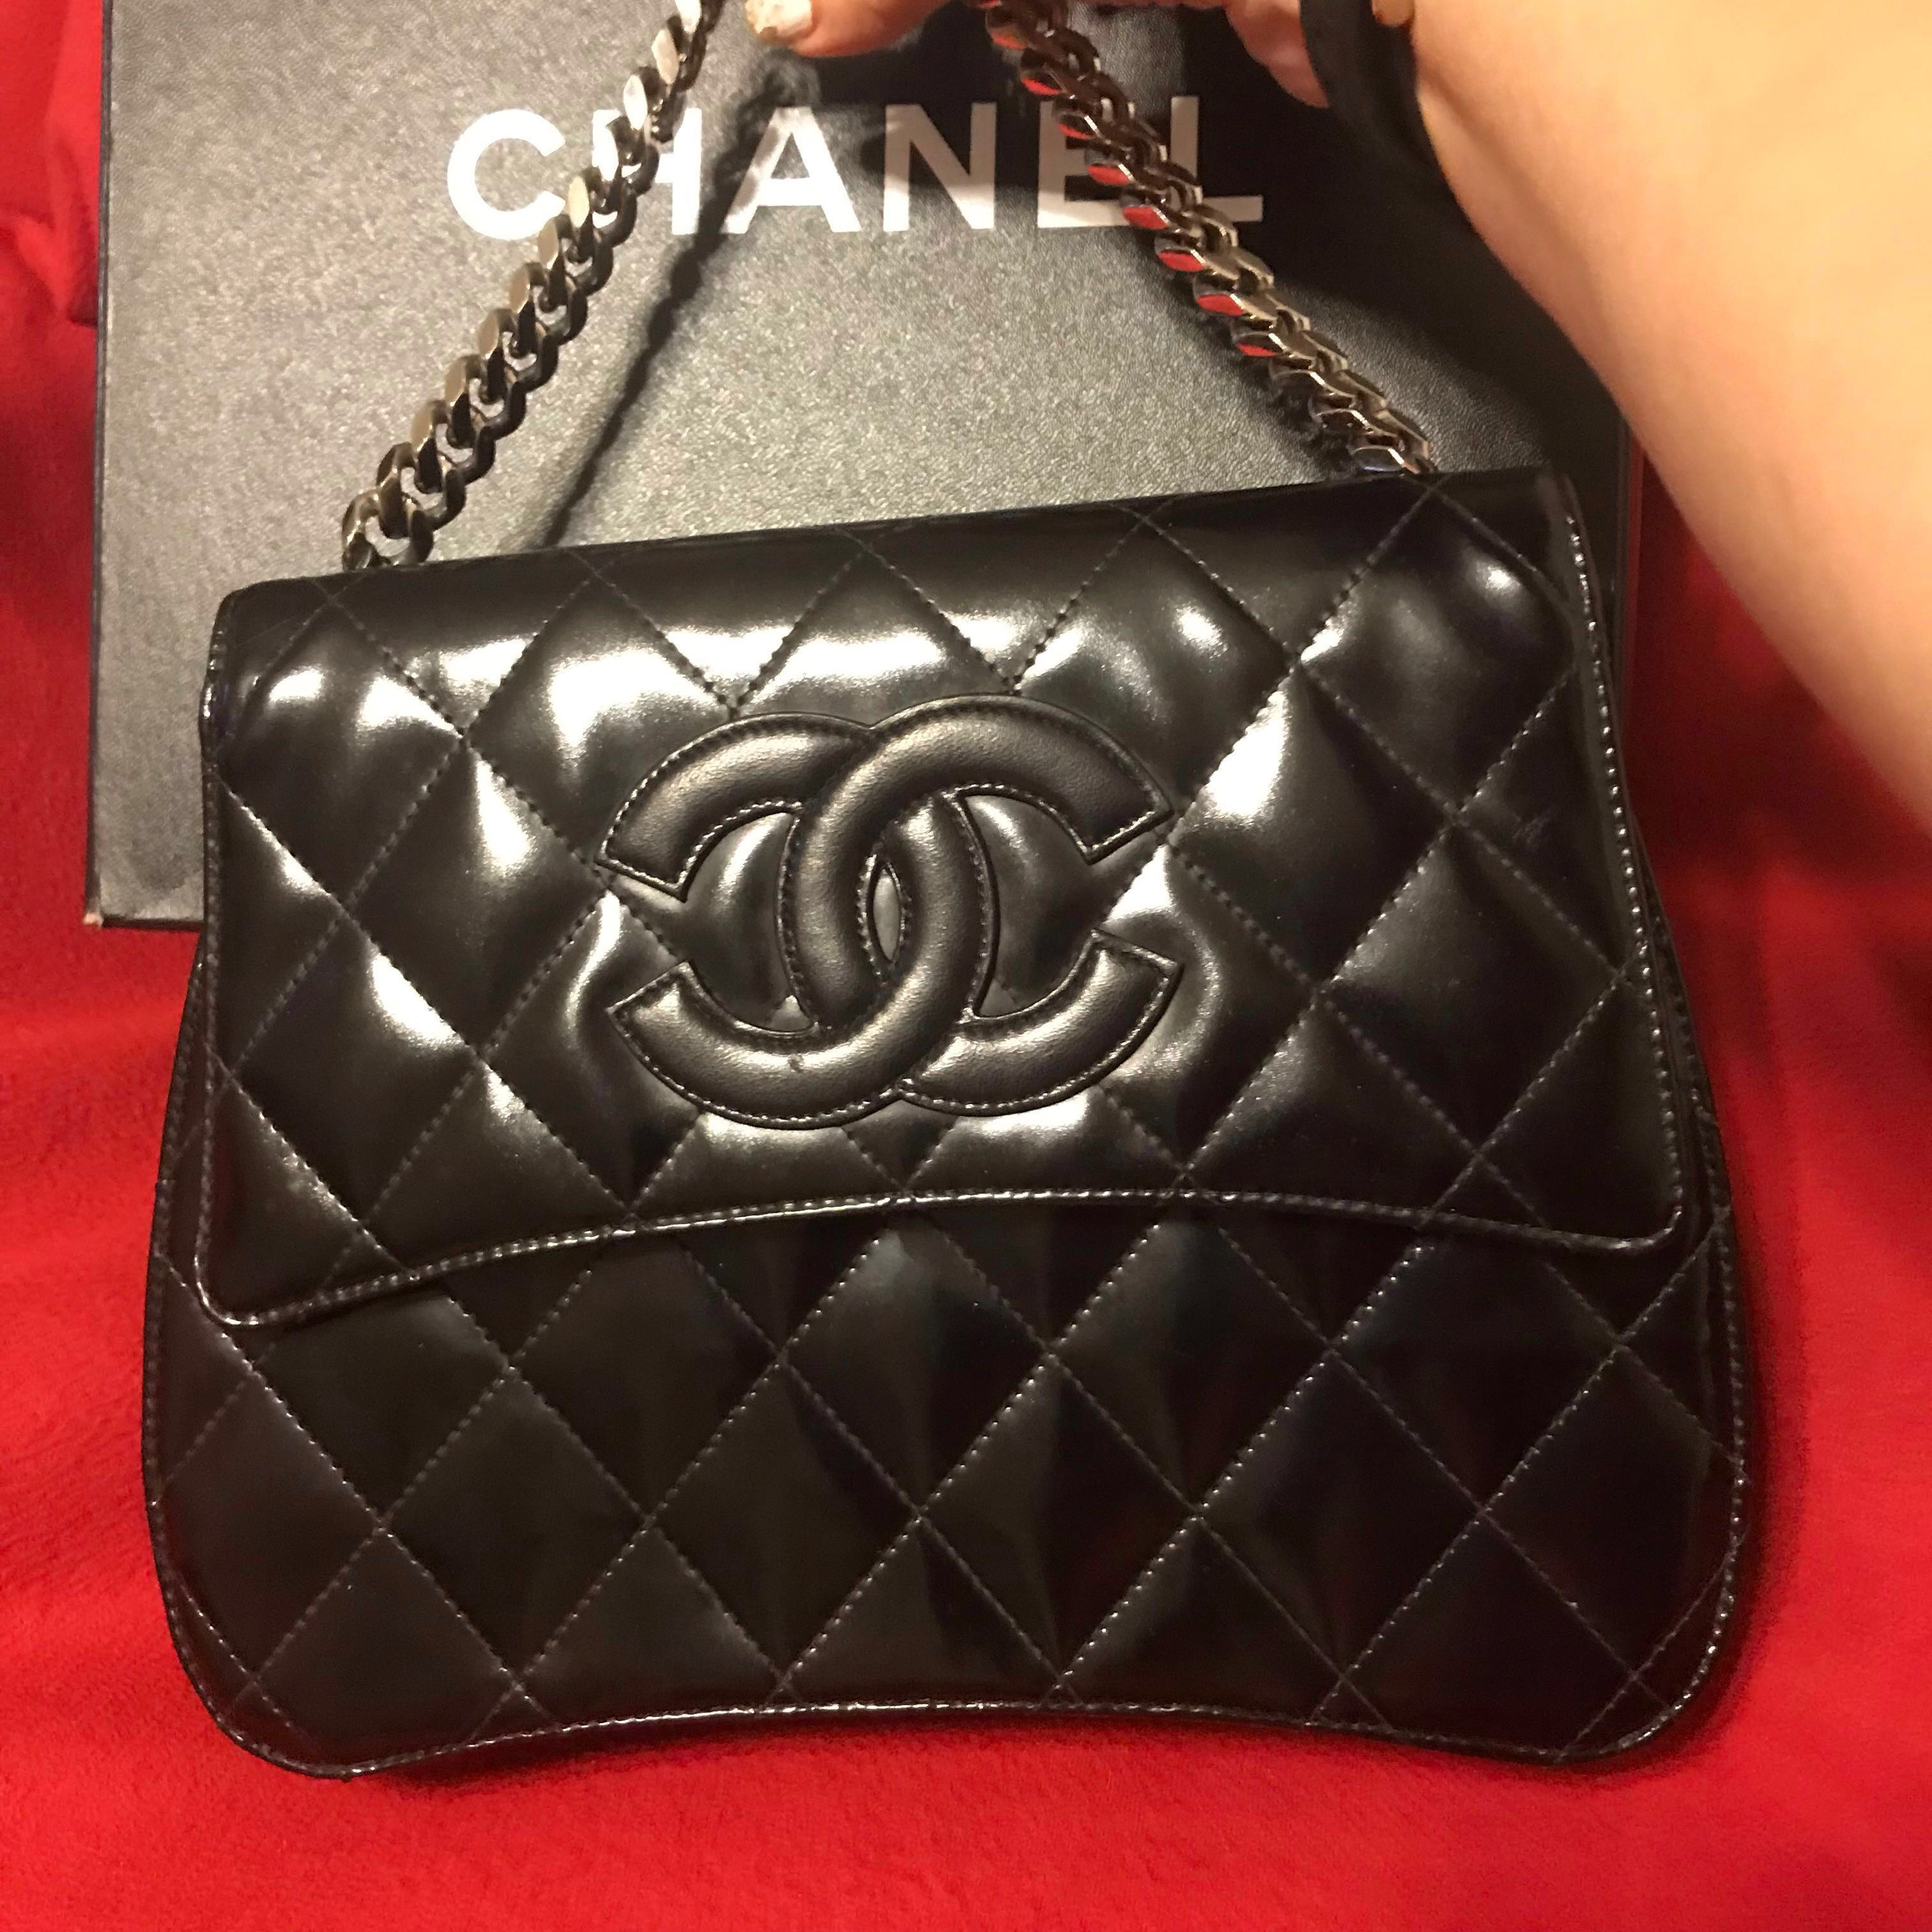 07722b4aac50 Authentic Chanel Silver chain strap Kelly Bag, Luxury, Bags ...